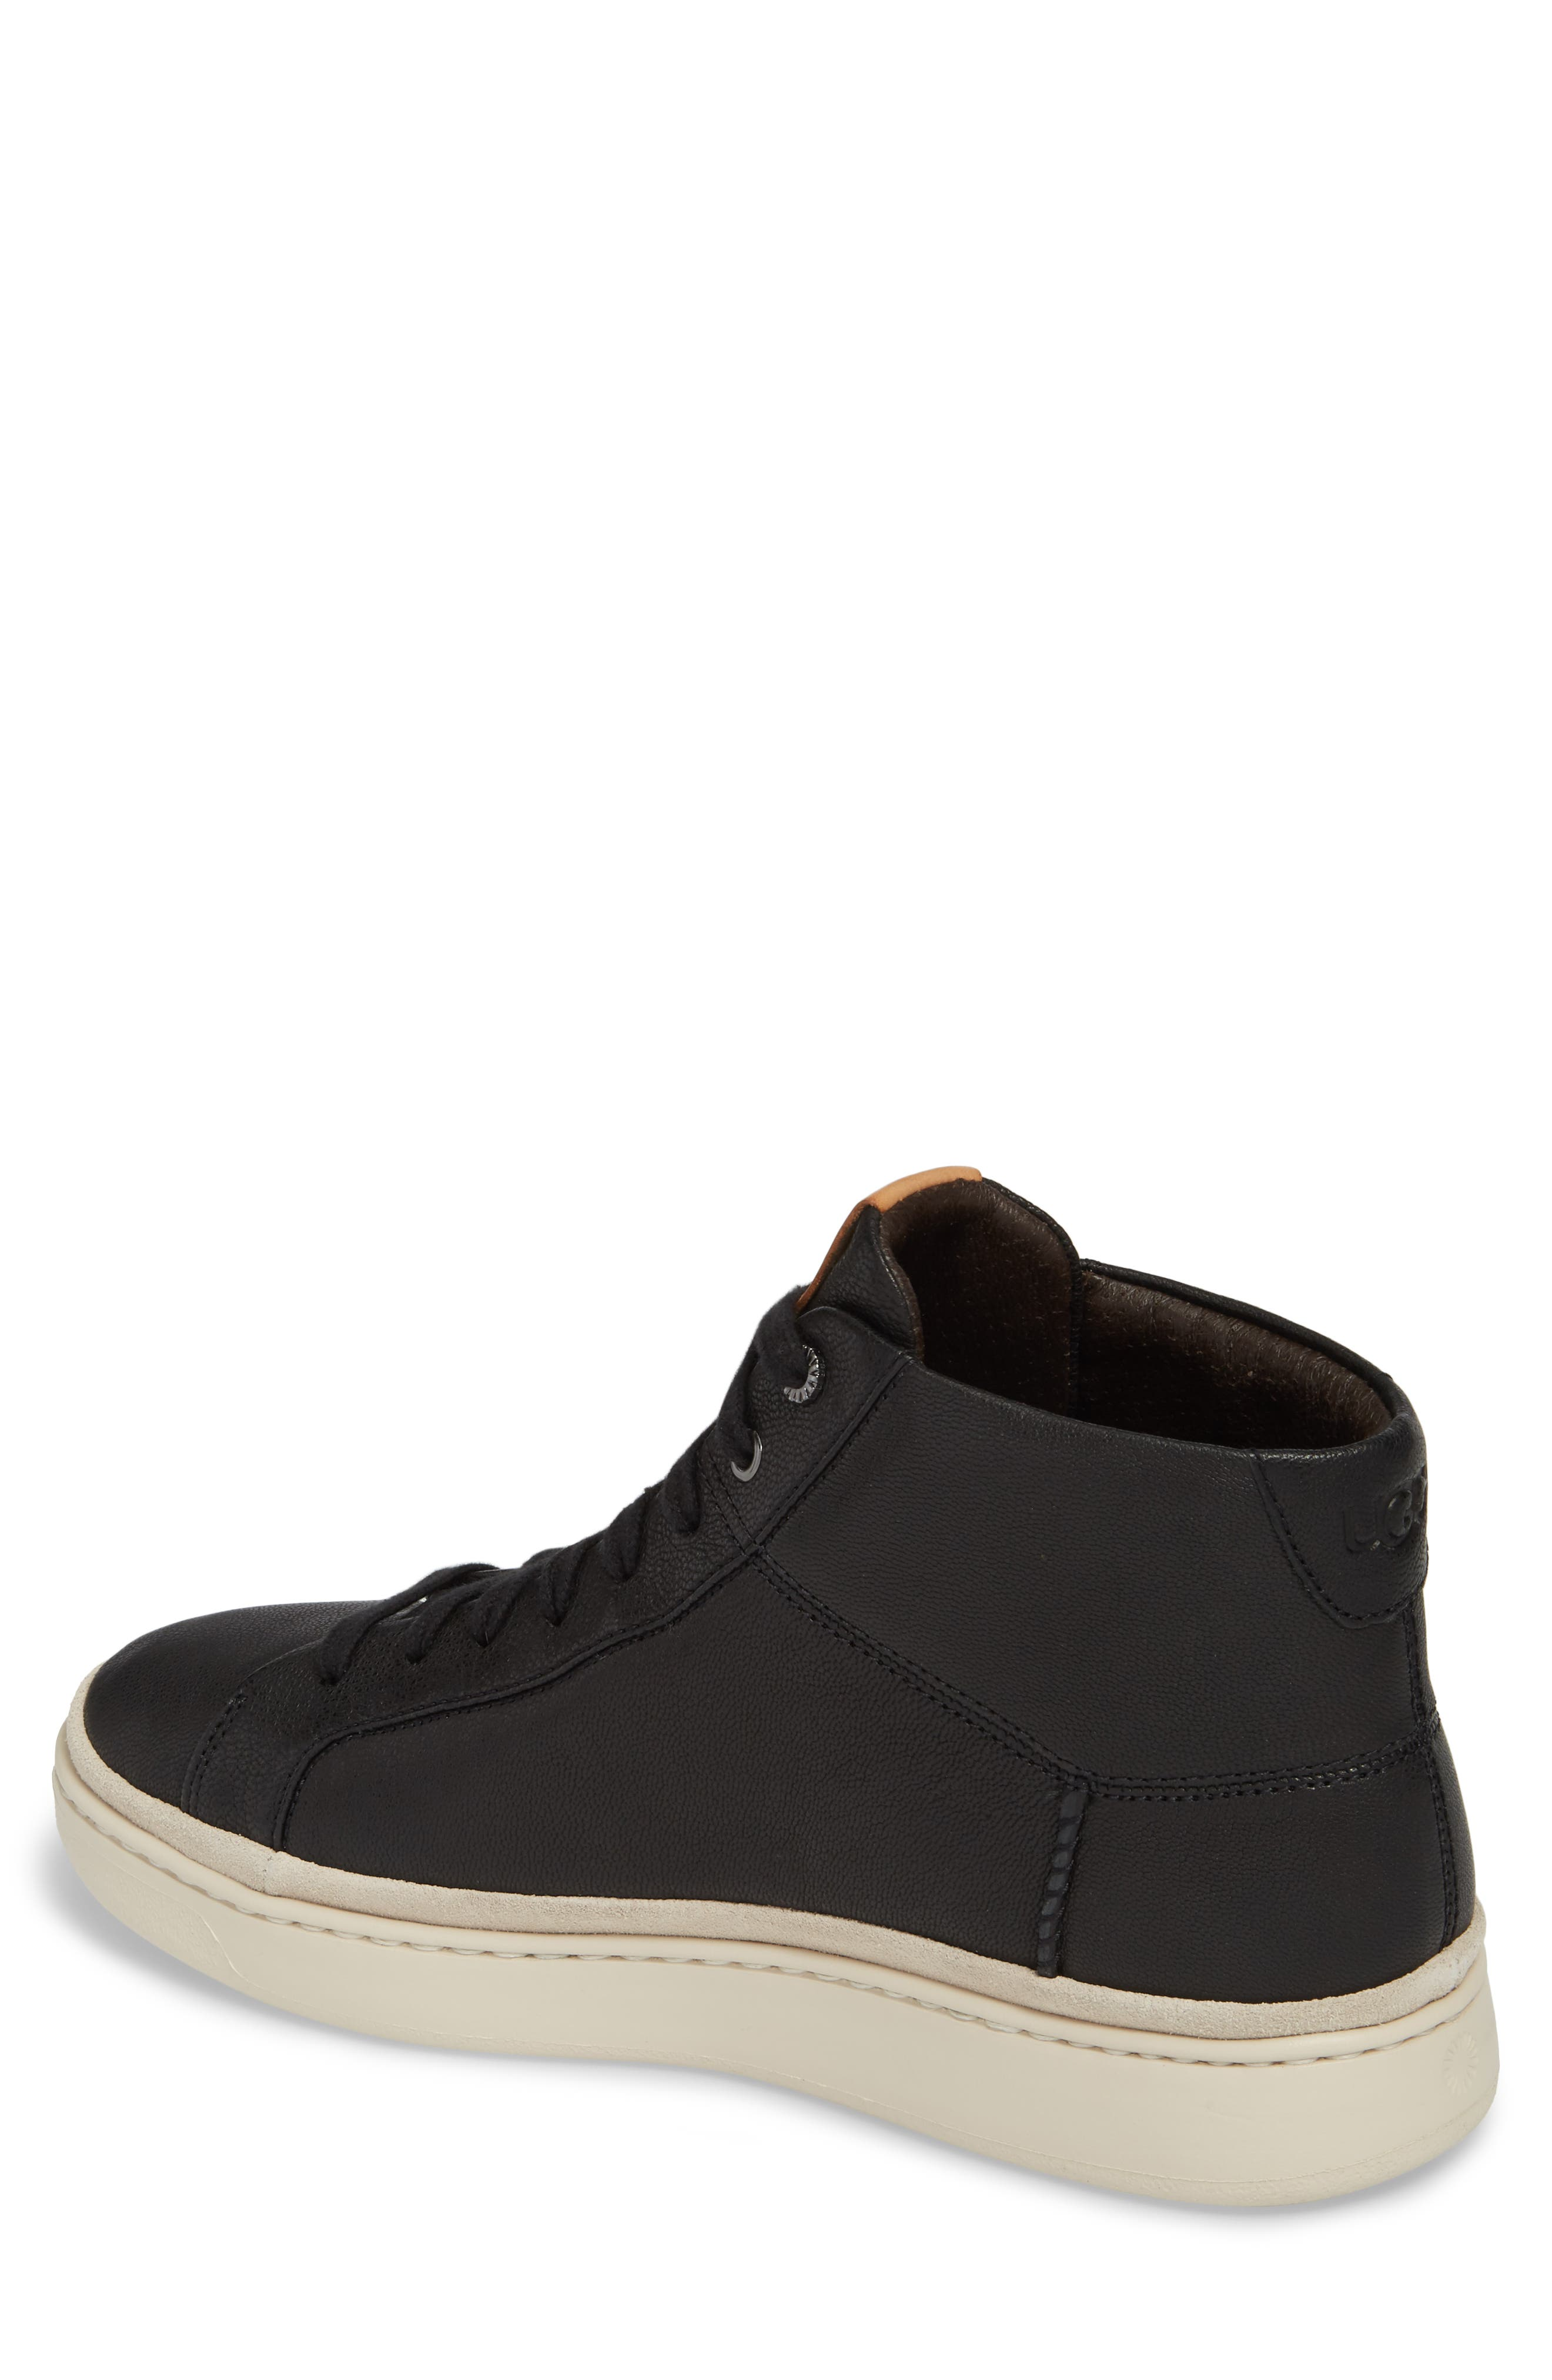 Cali High Top Sneaker,                             Alternate thumbnail 2, color,                             Black Leather